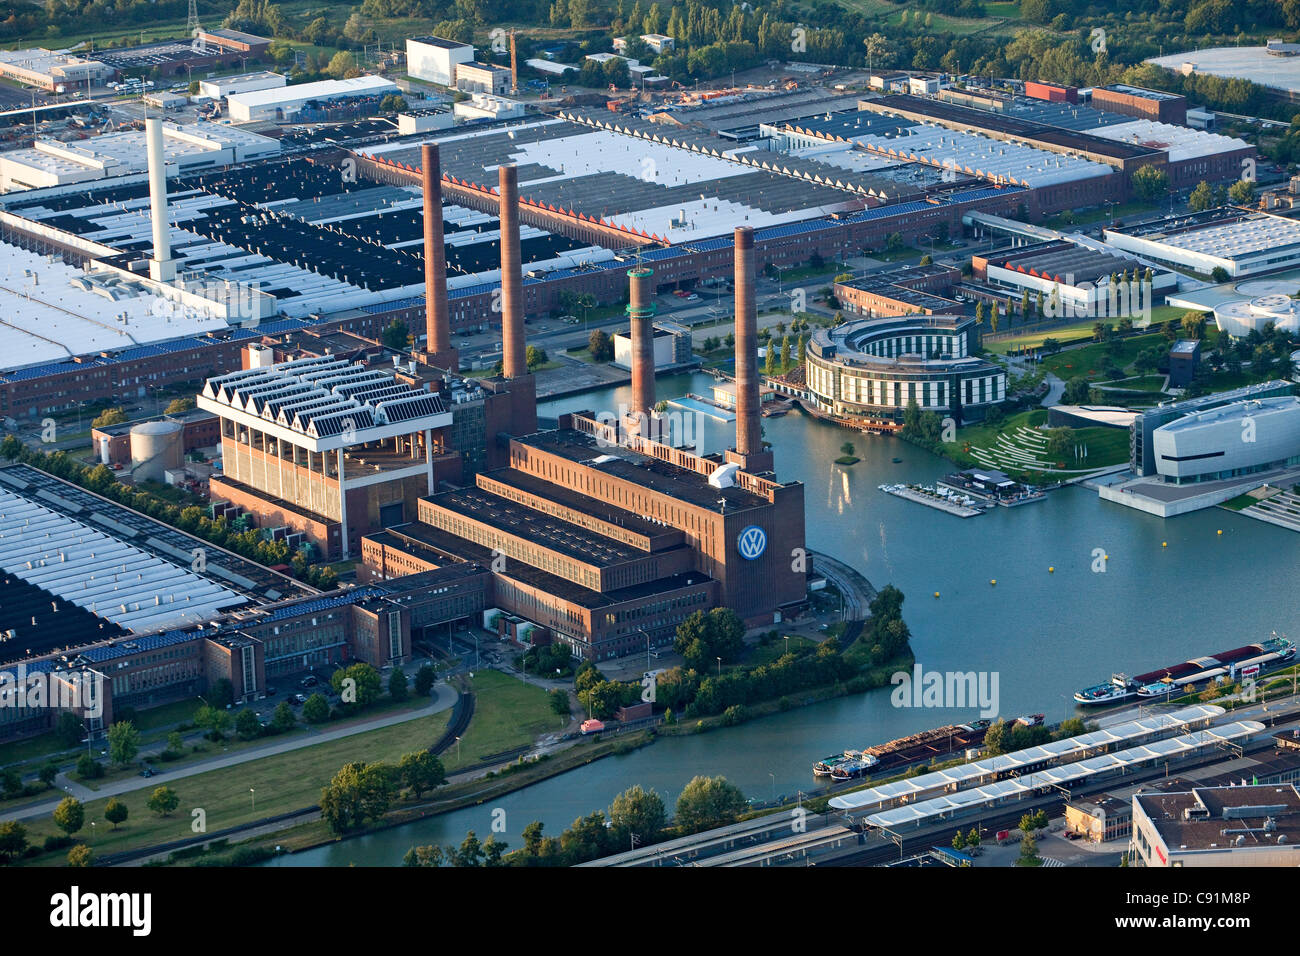 Aerial view of a power plant and VW Autostadt Wolfsburg, Lower Saxony, Germany - Stock Image